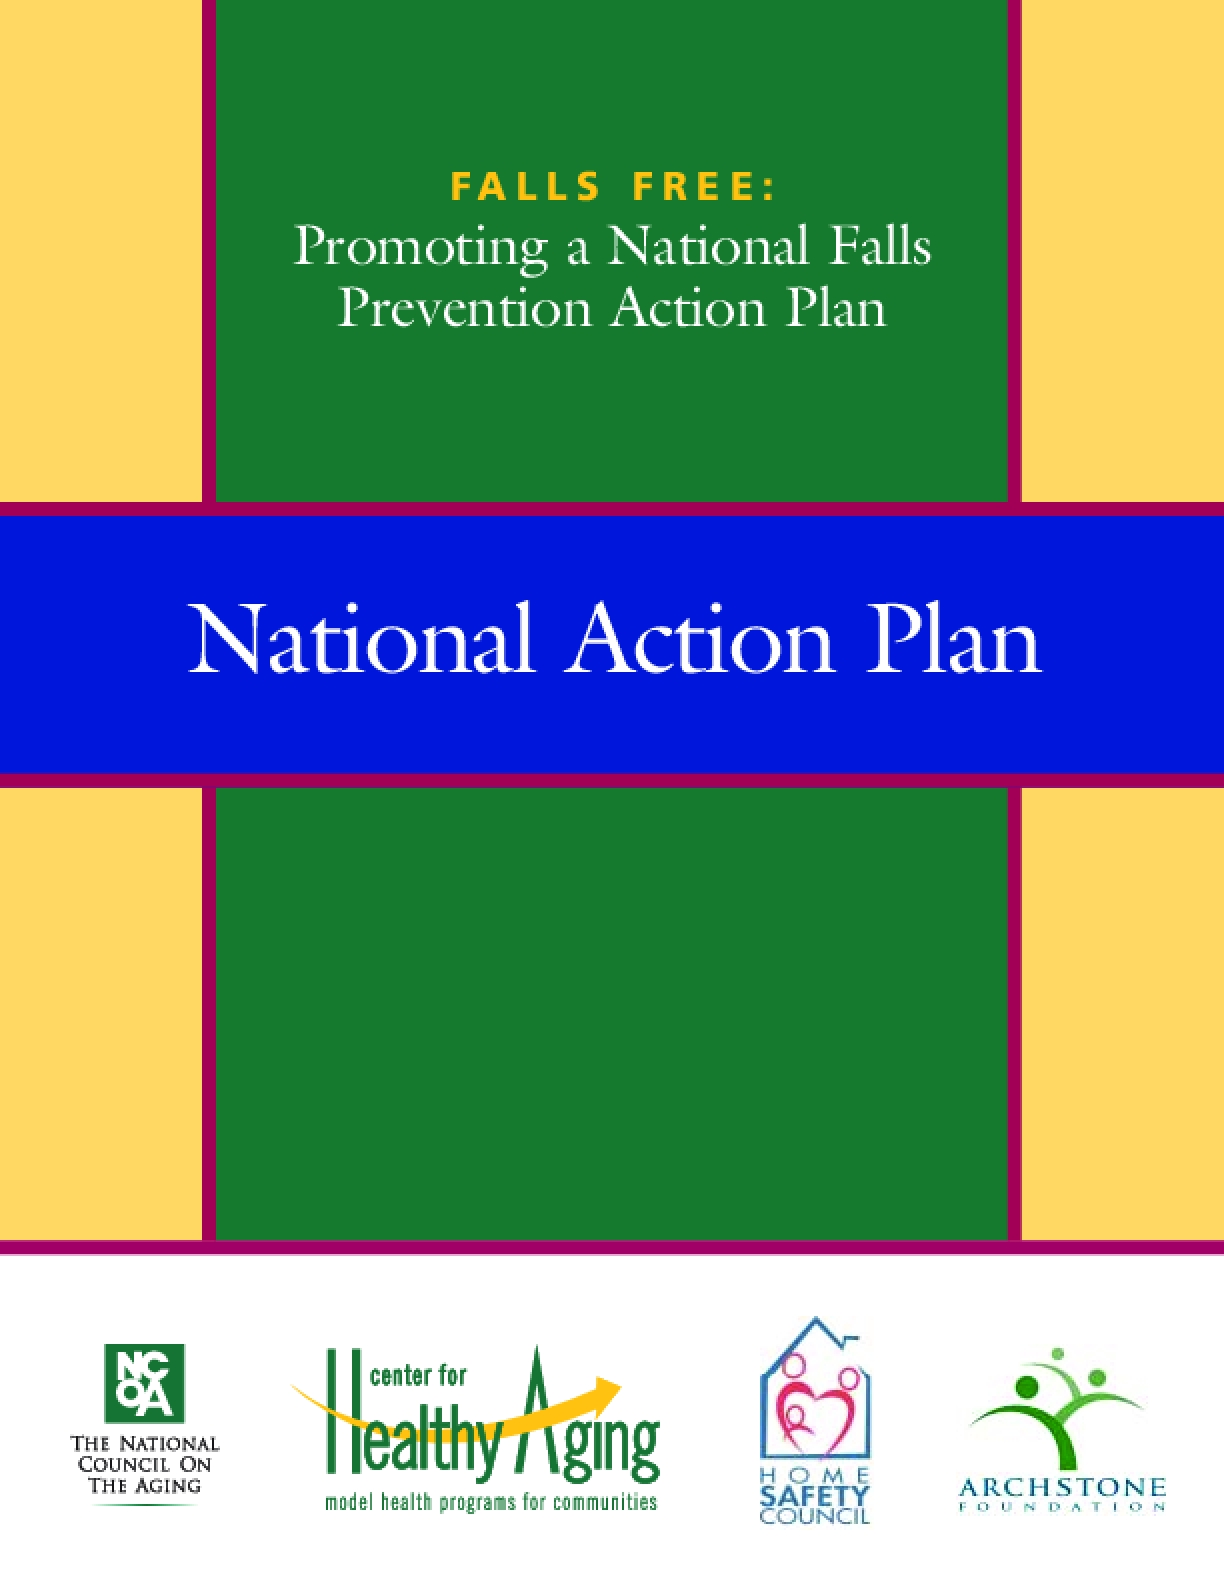 Falls Free: Promoting a National Falls Prevention Acton Plan